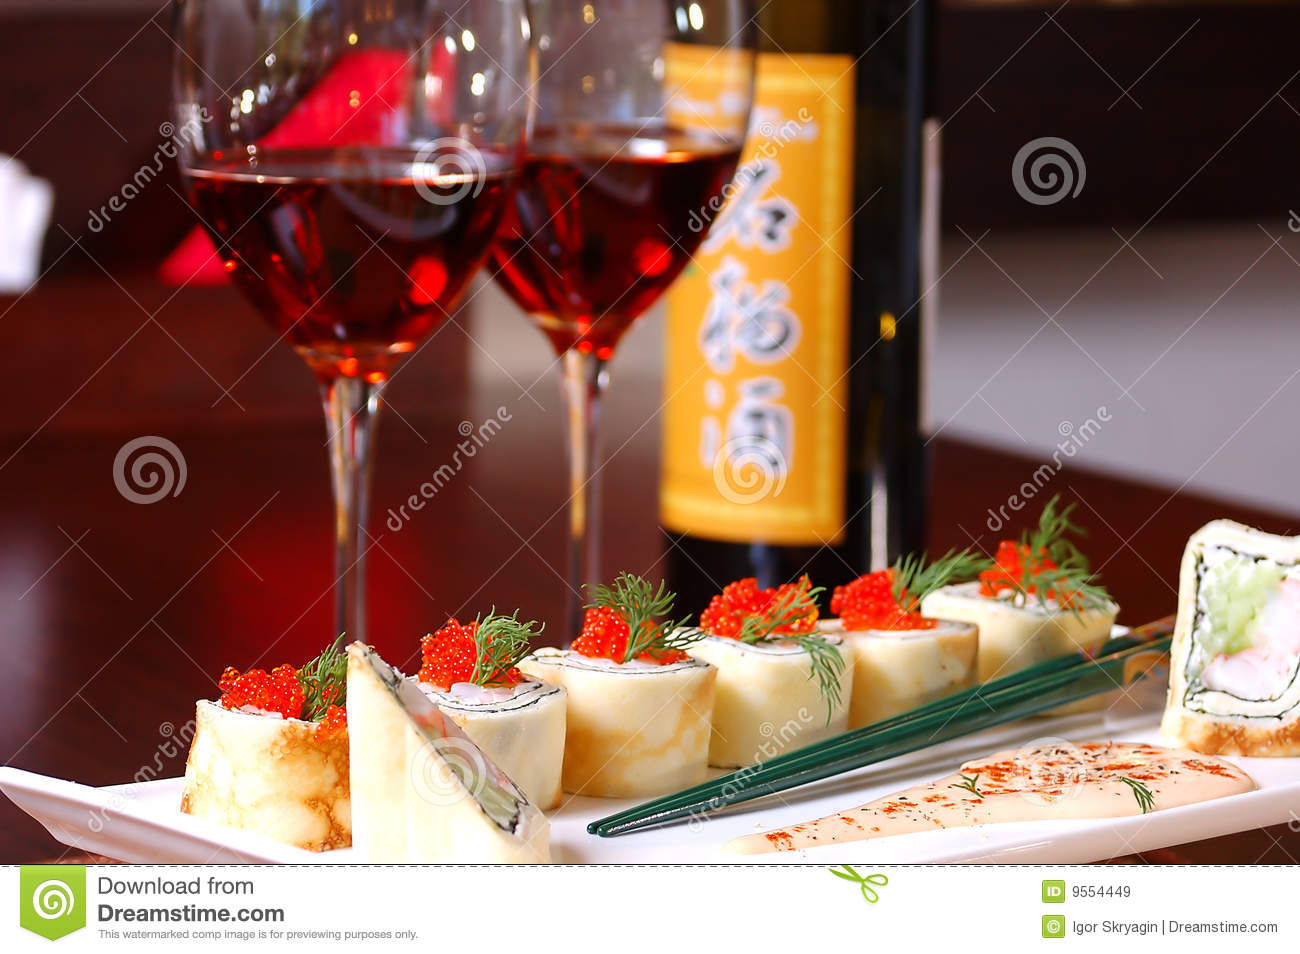 Fish with red wine royalty free stock images image 9554449 for Red wine with fish